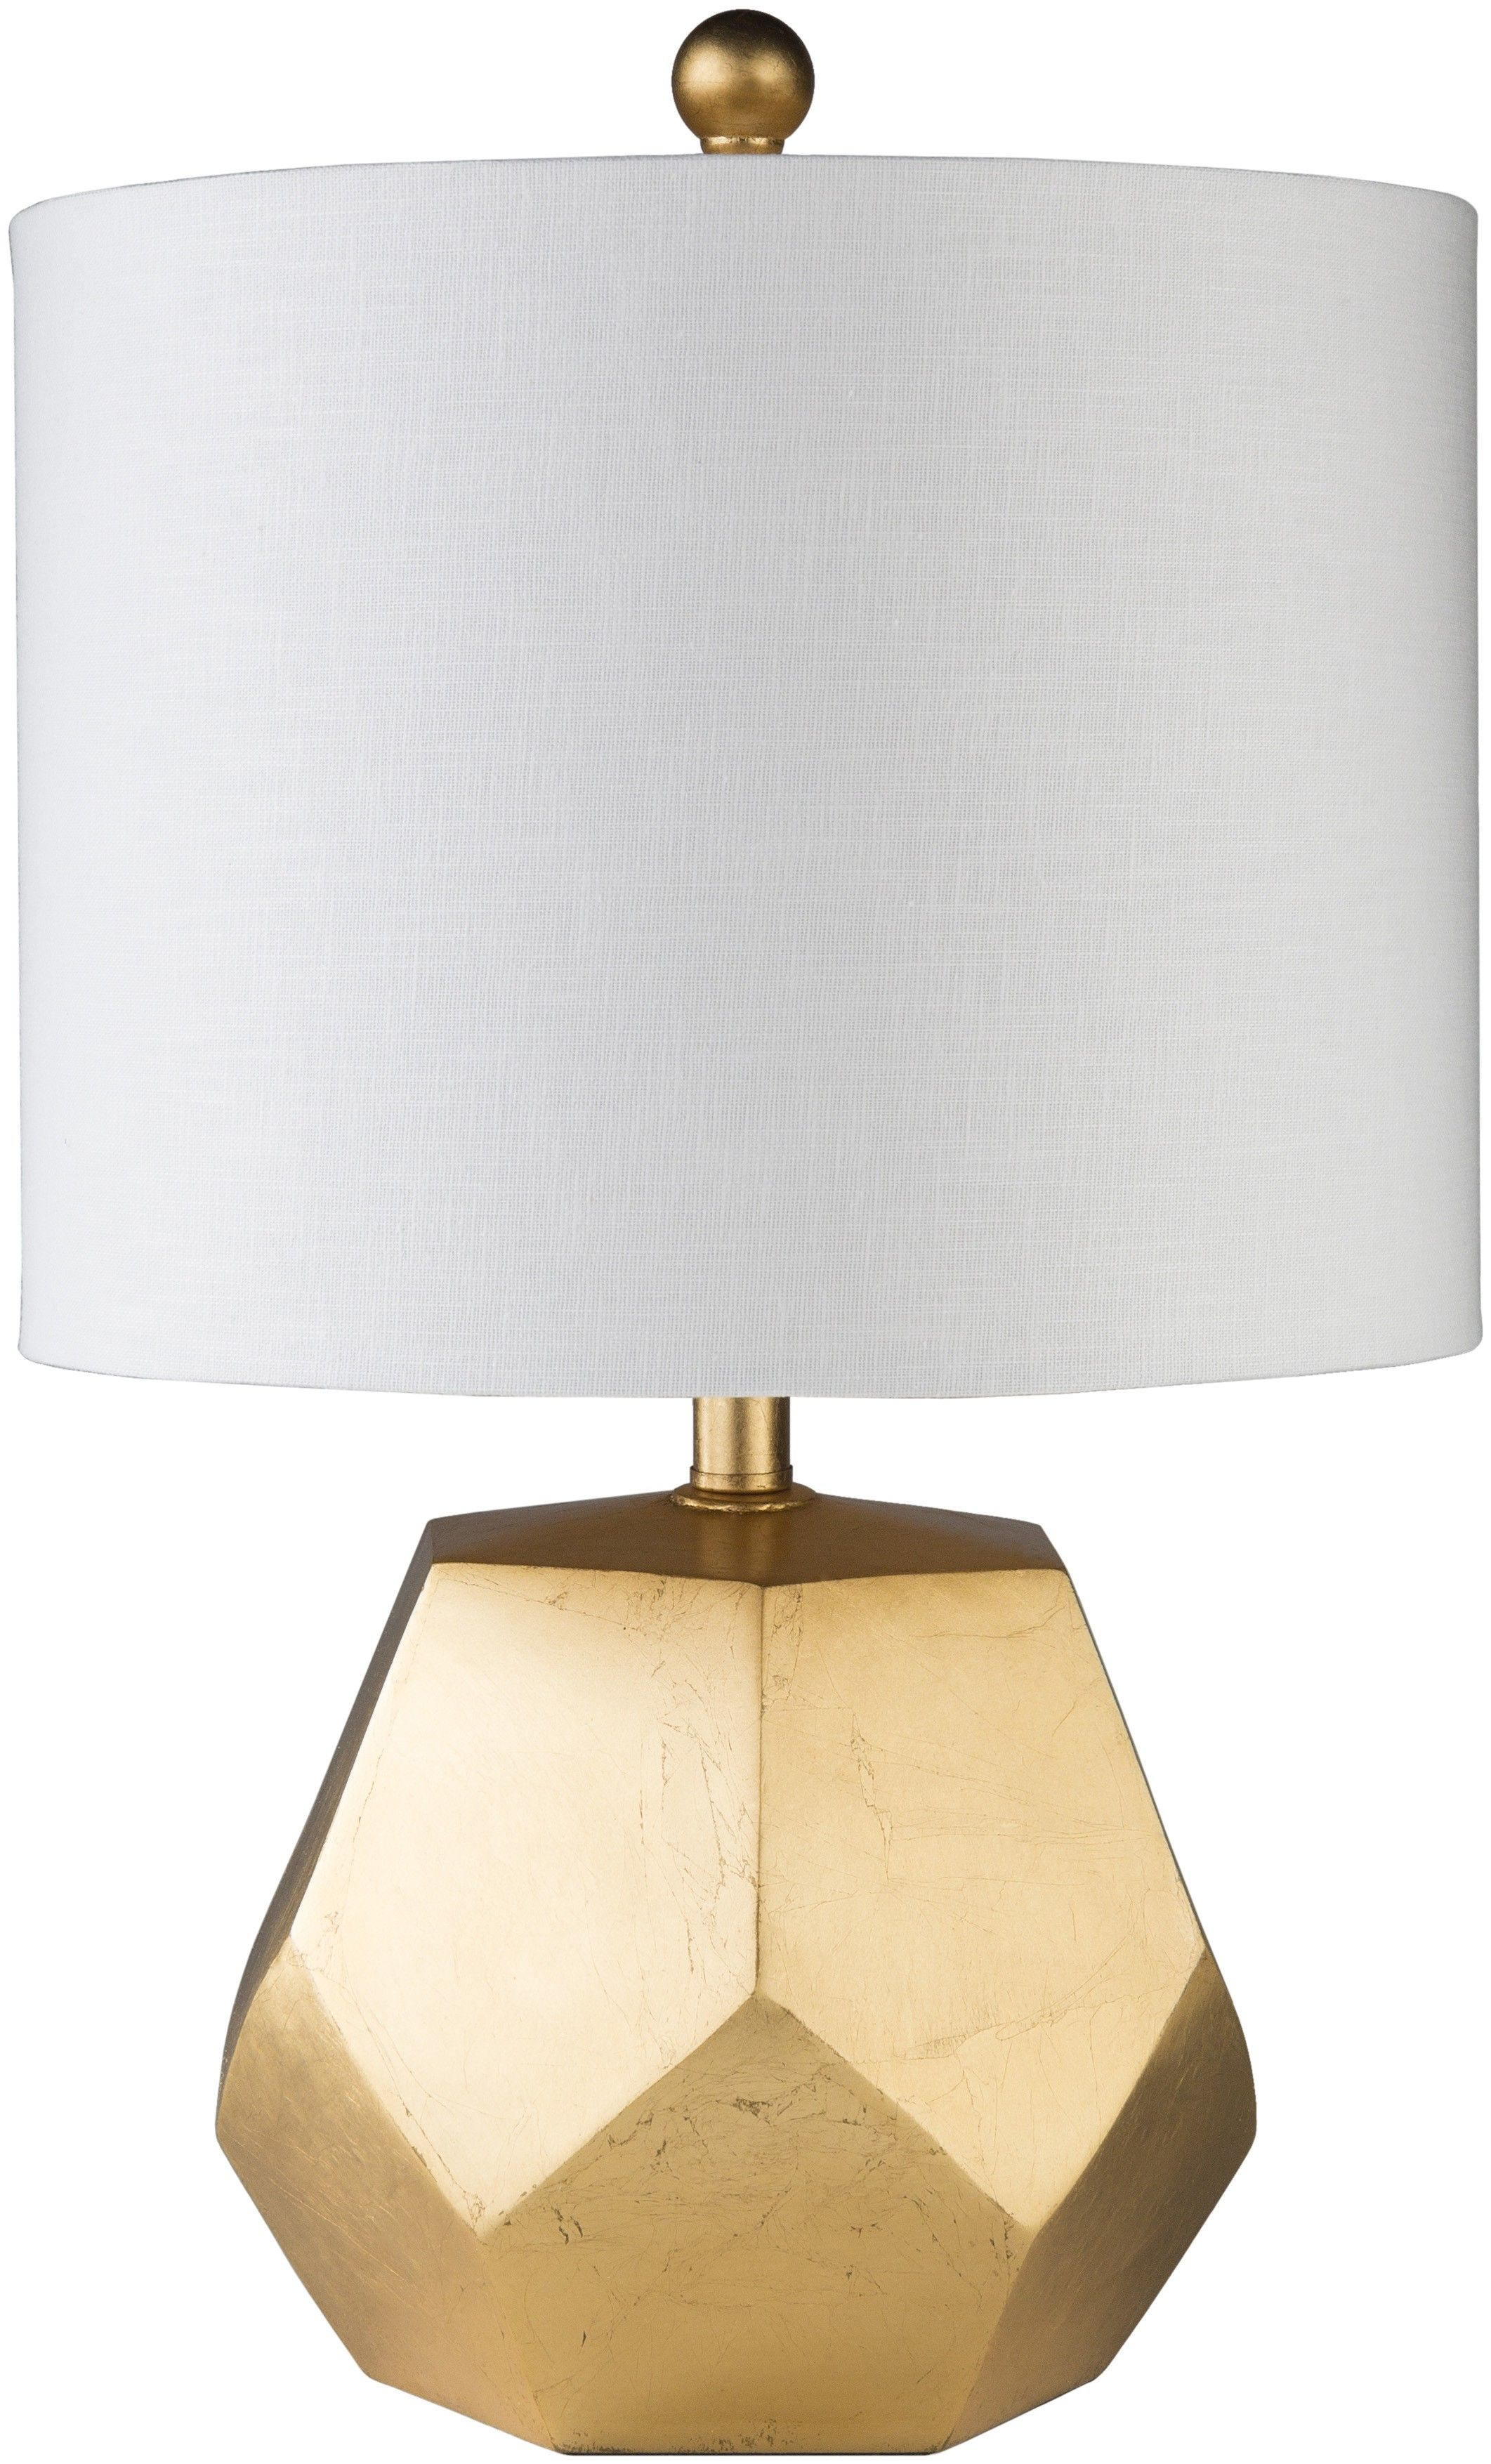 This Faceted Table Lamp In Bright Gold Will Bring Dimension And Warmth To Your Space Style It On A Side Table In Your Li Glam Table Lamps Gold Lamp Table Lamp